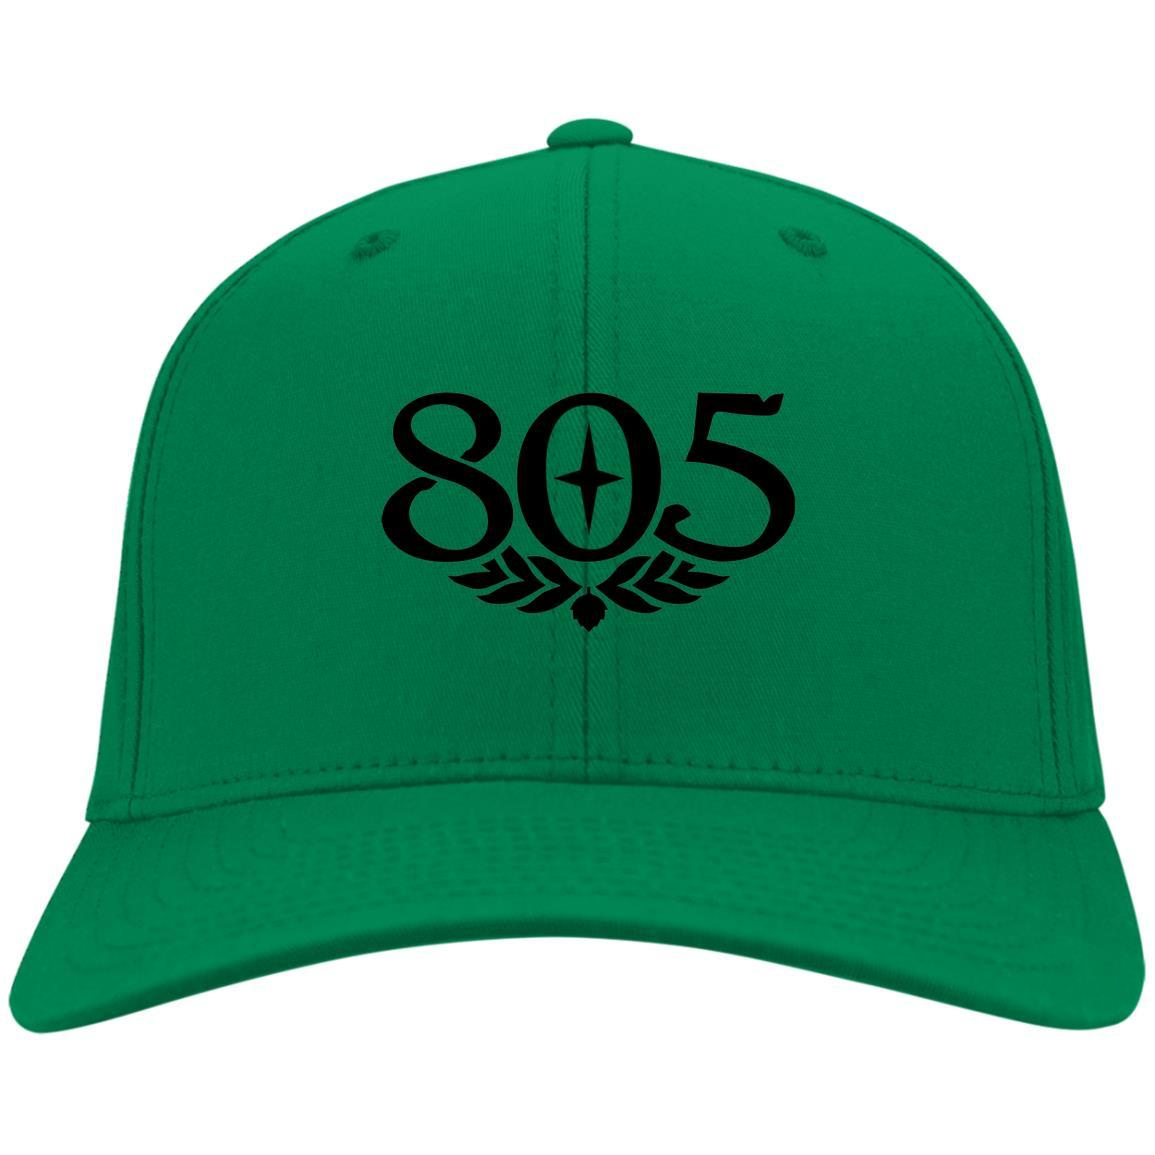 805 Beer Black - Port & Co. Twill Cap Kelly Green